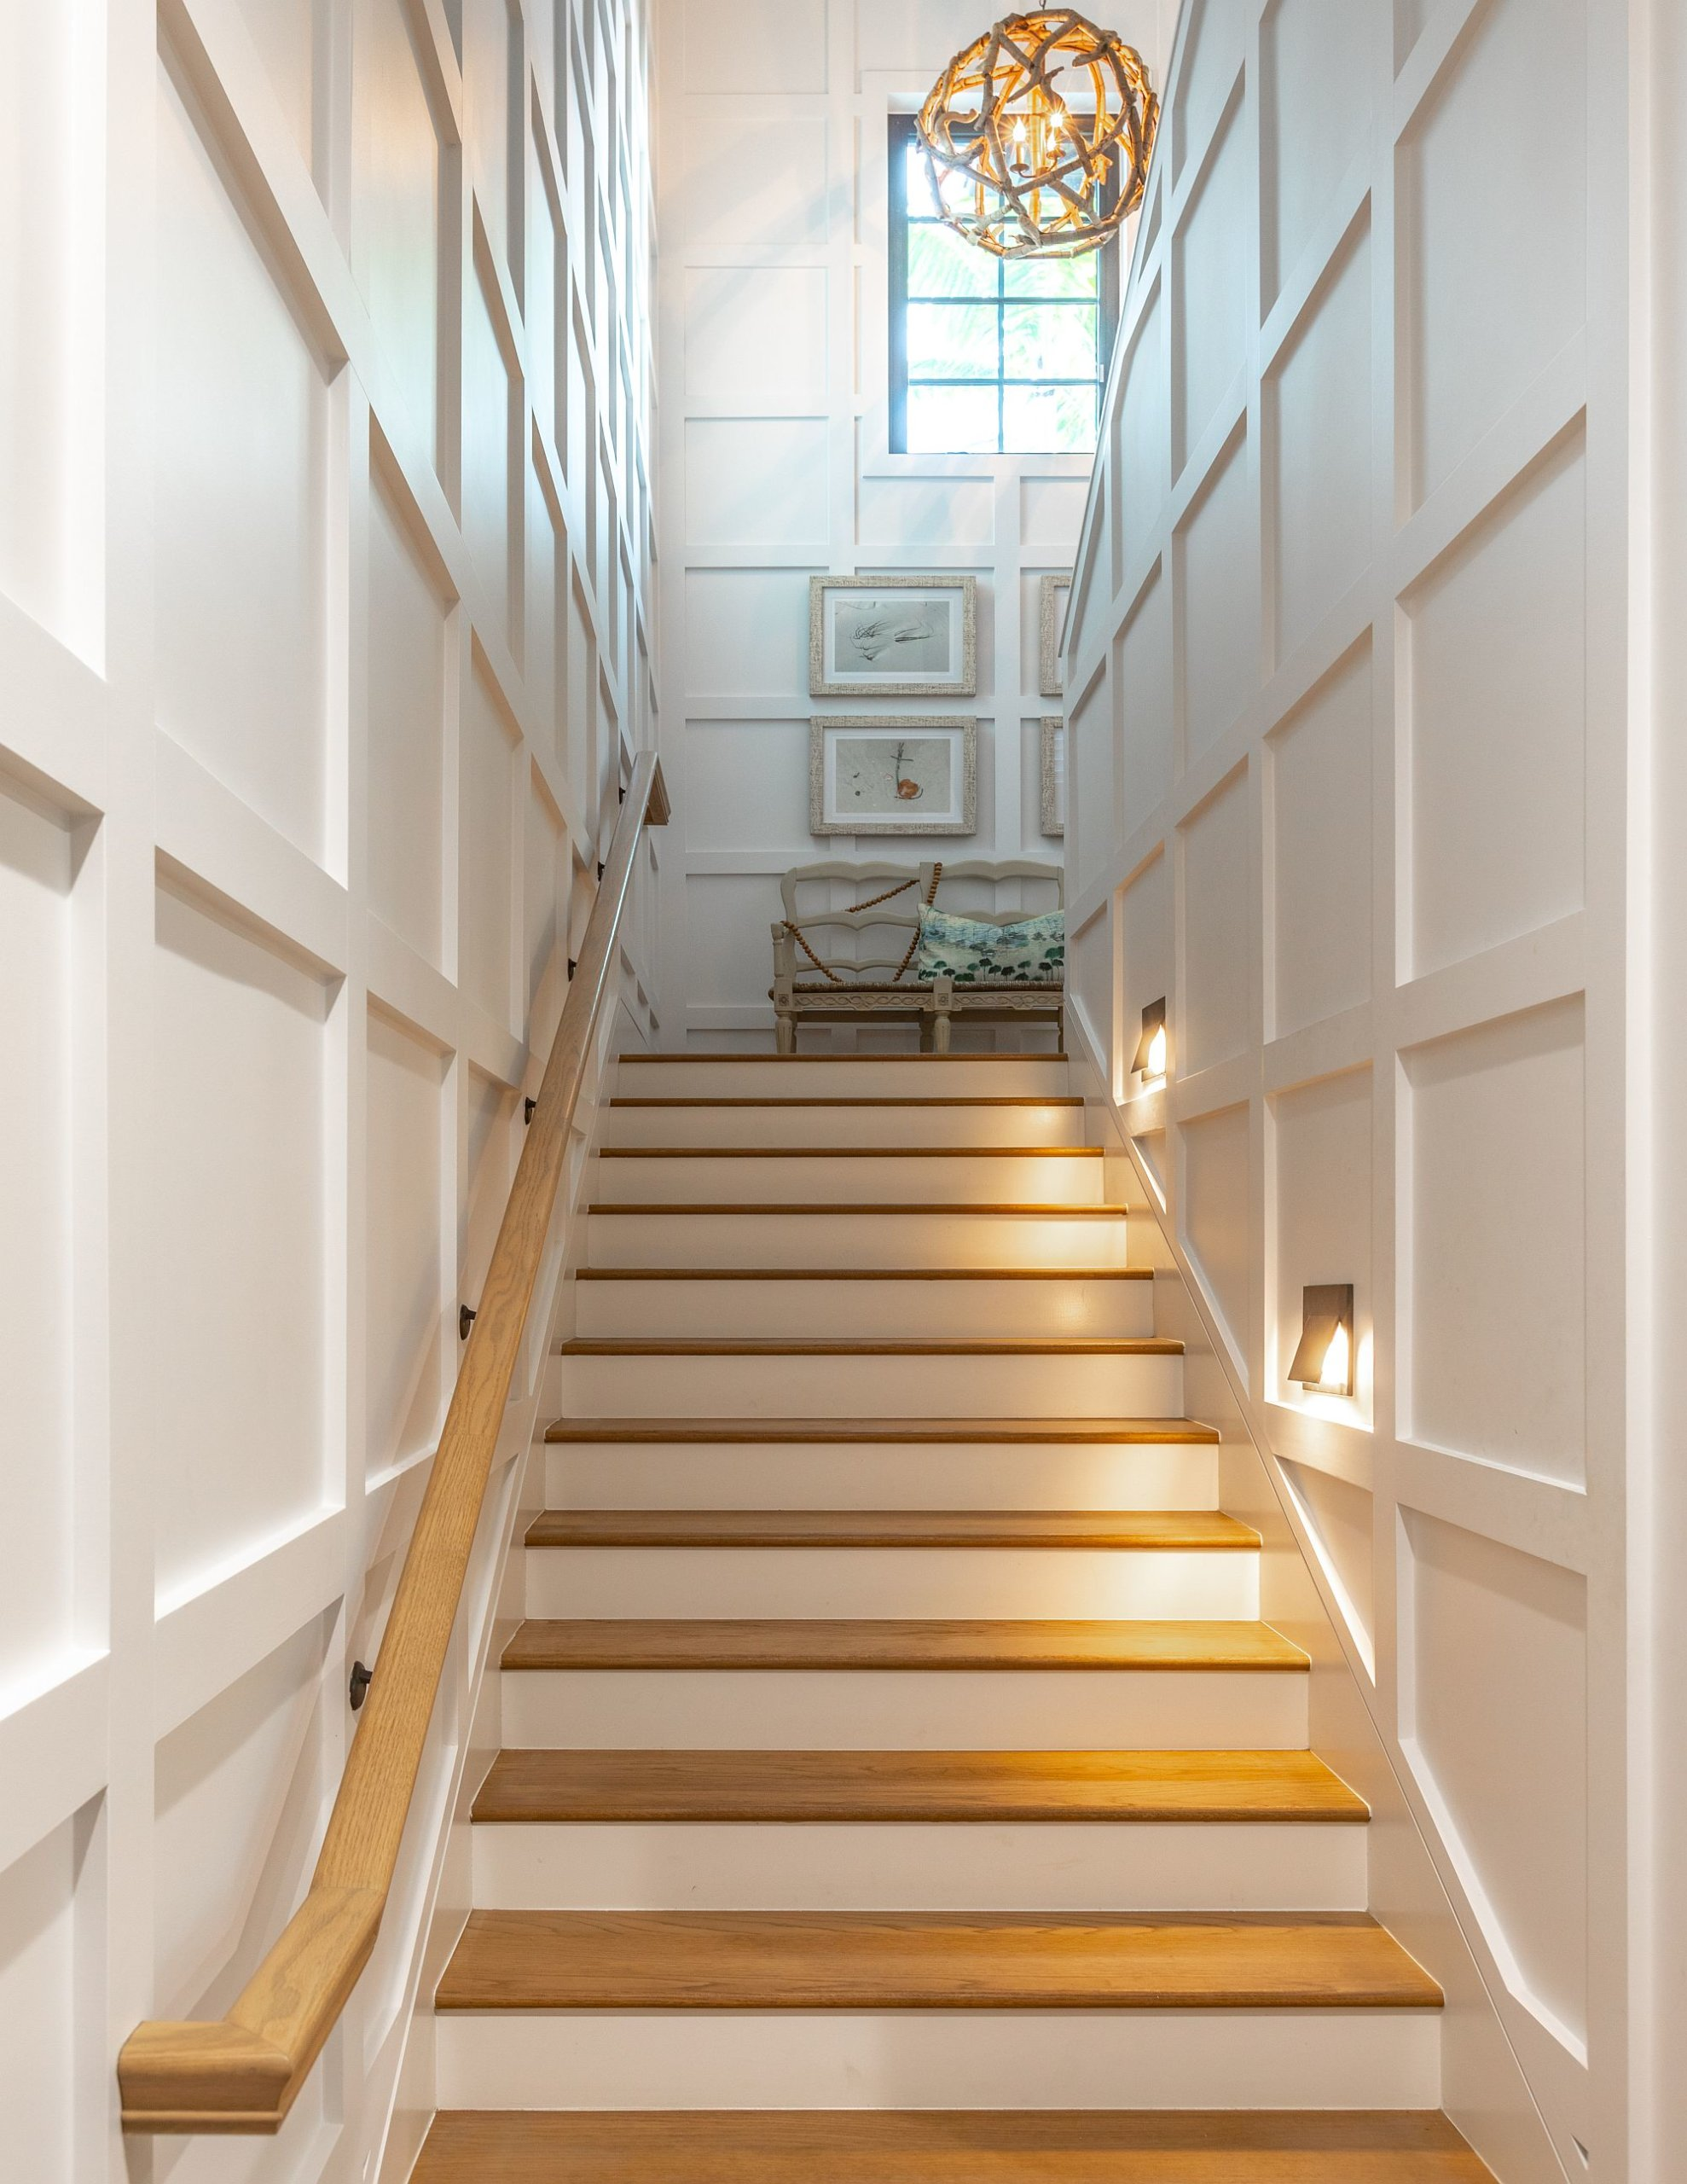 Find-the-right-lighting-to-illuminate-the-grand-staircase-93551-scaled